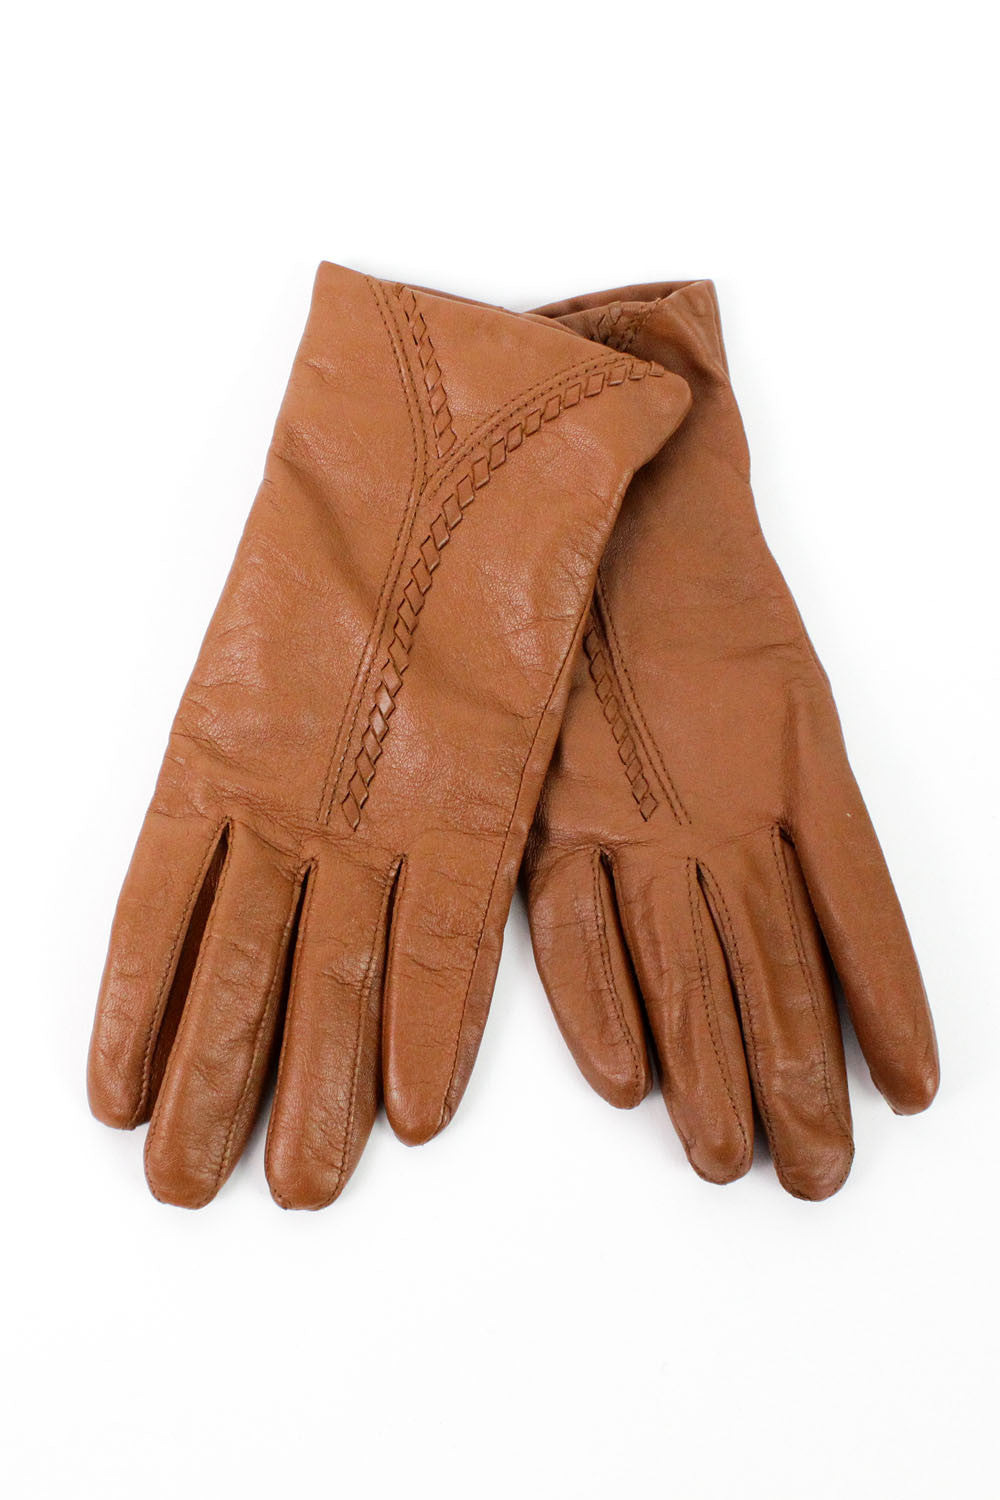 Etienne Aigner leather gloves